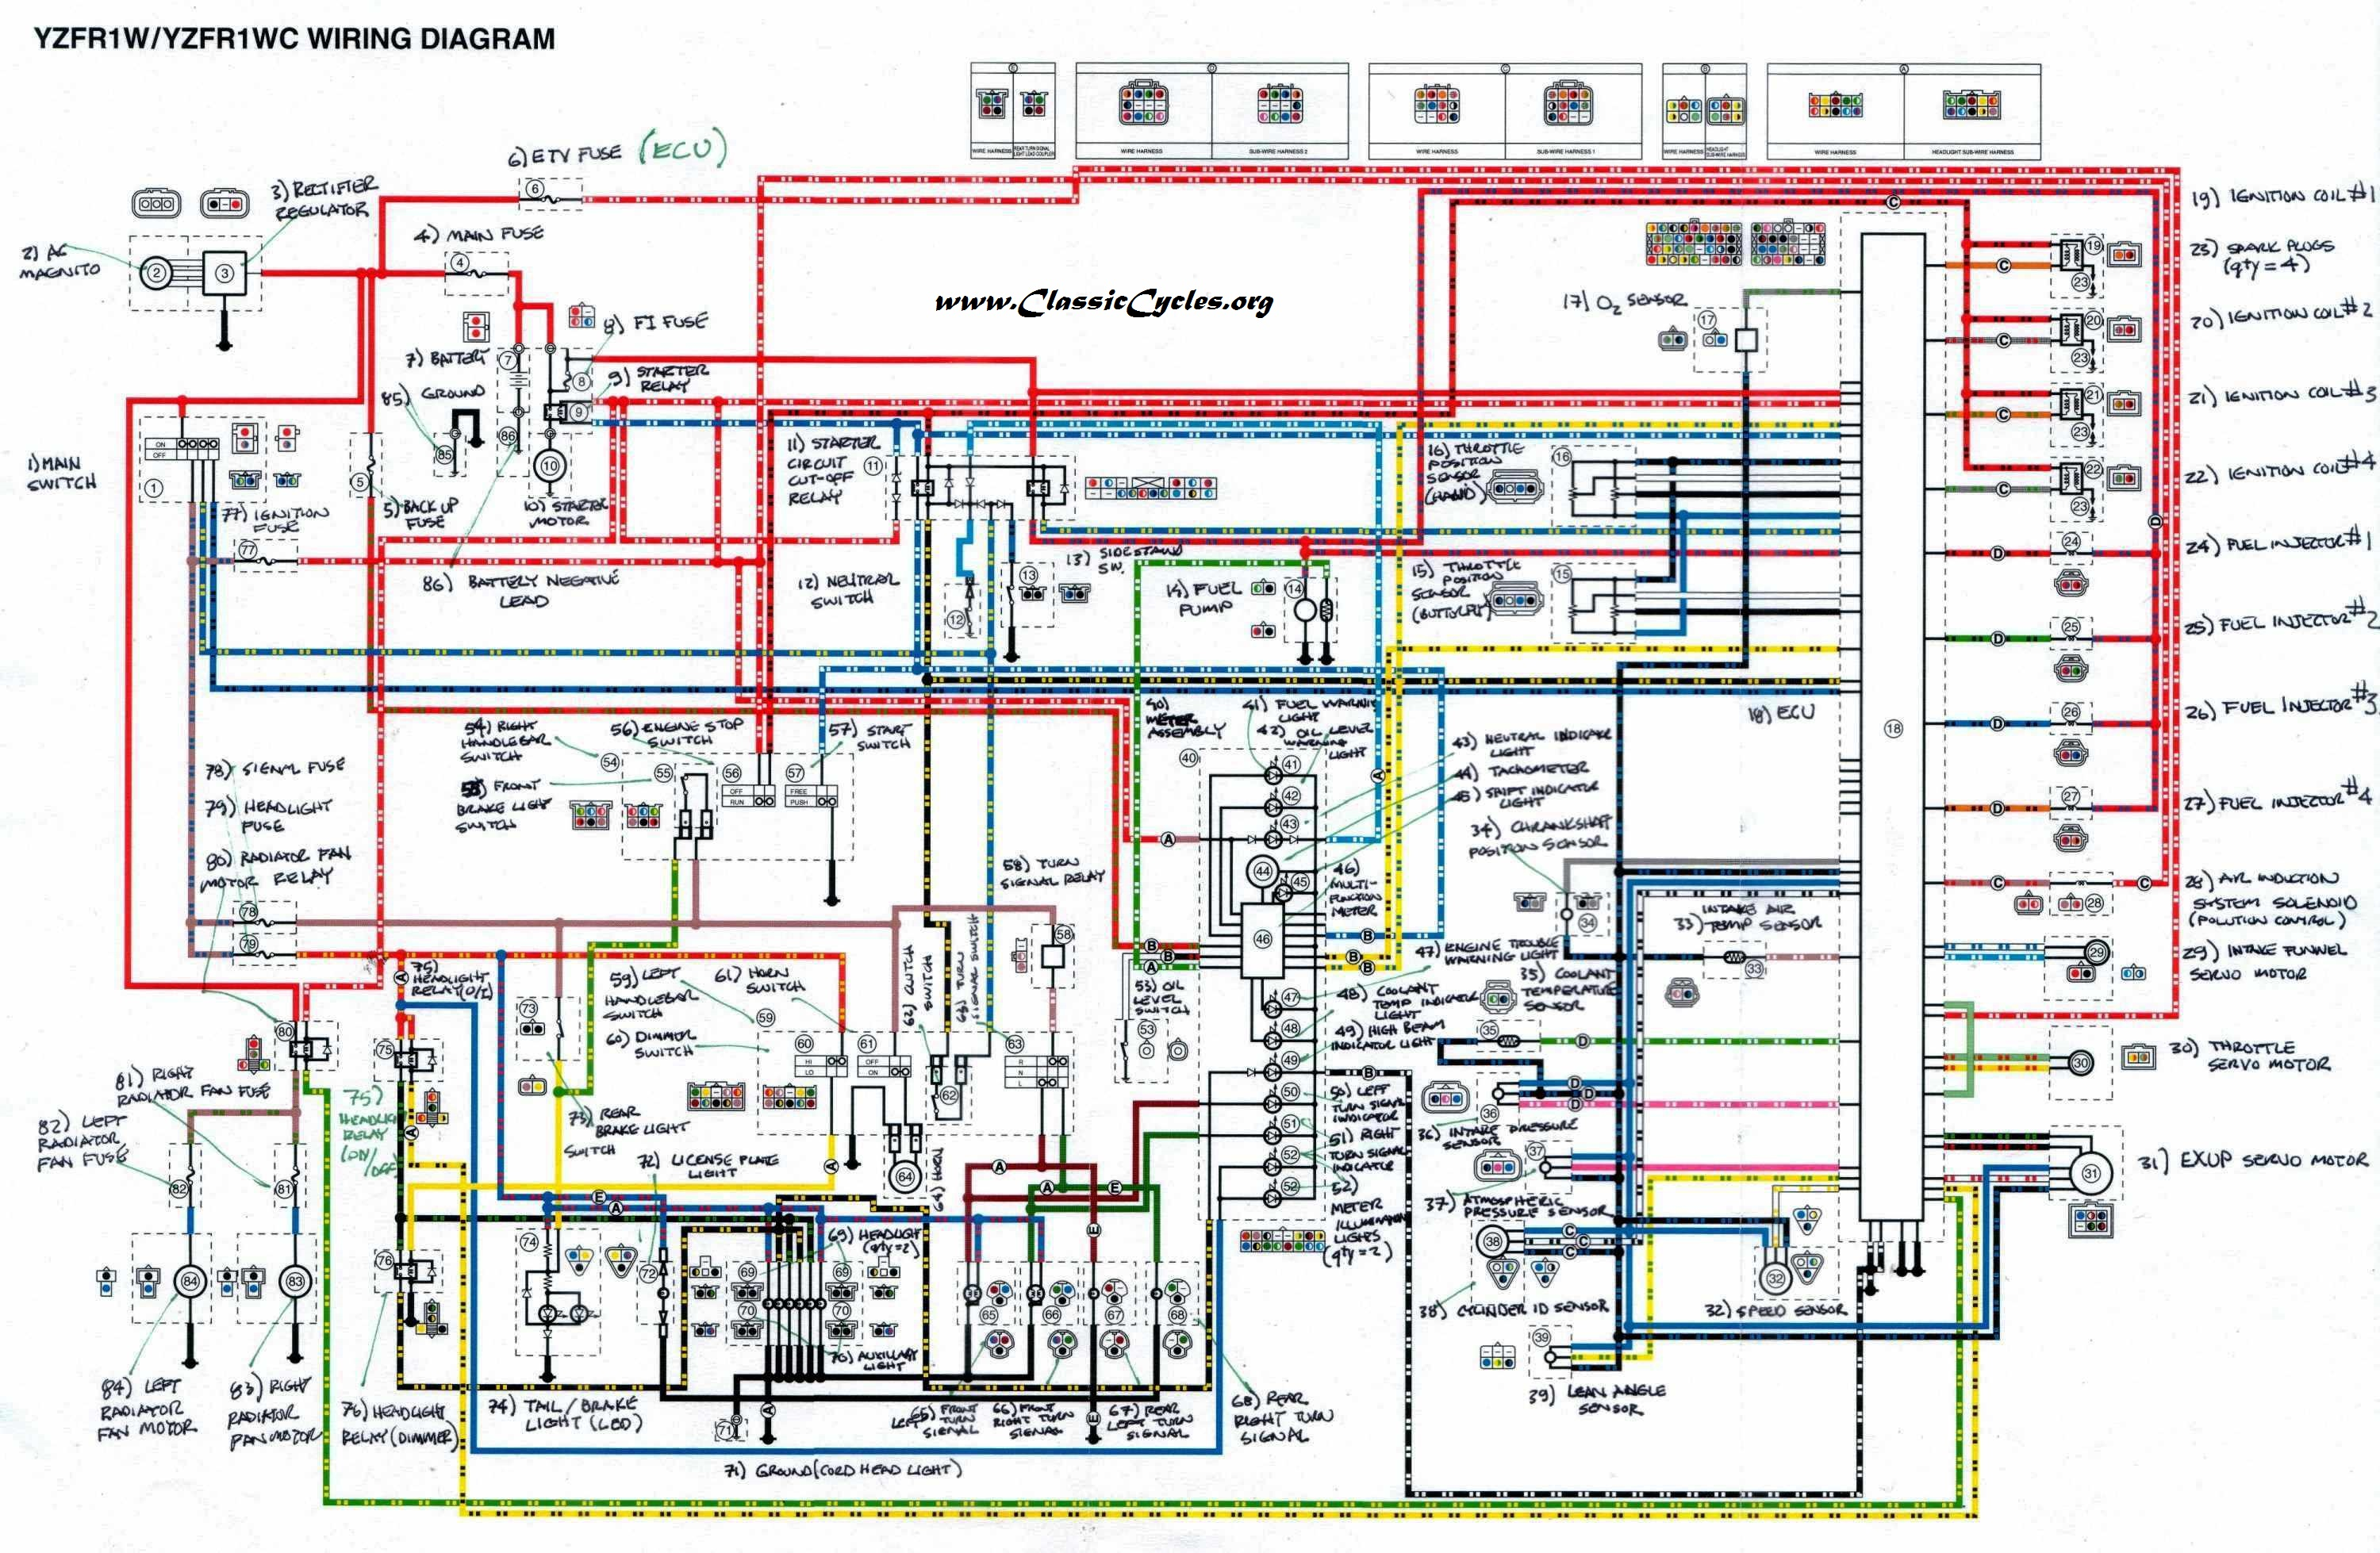 Yamaha Waverunner Diagram Free Download Wiring Schematic Online Diagrams 89 Schema